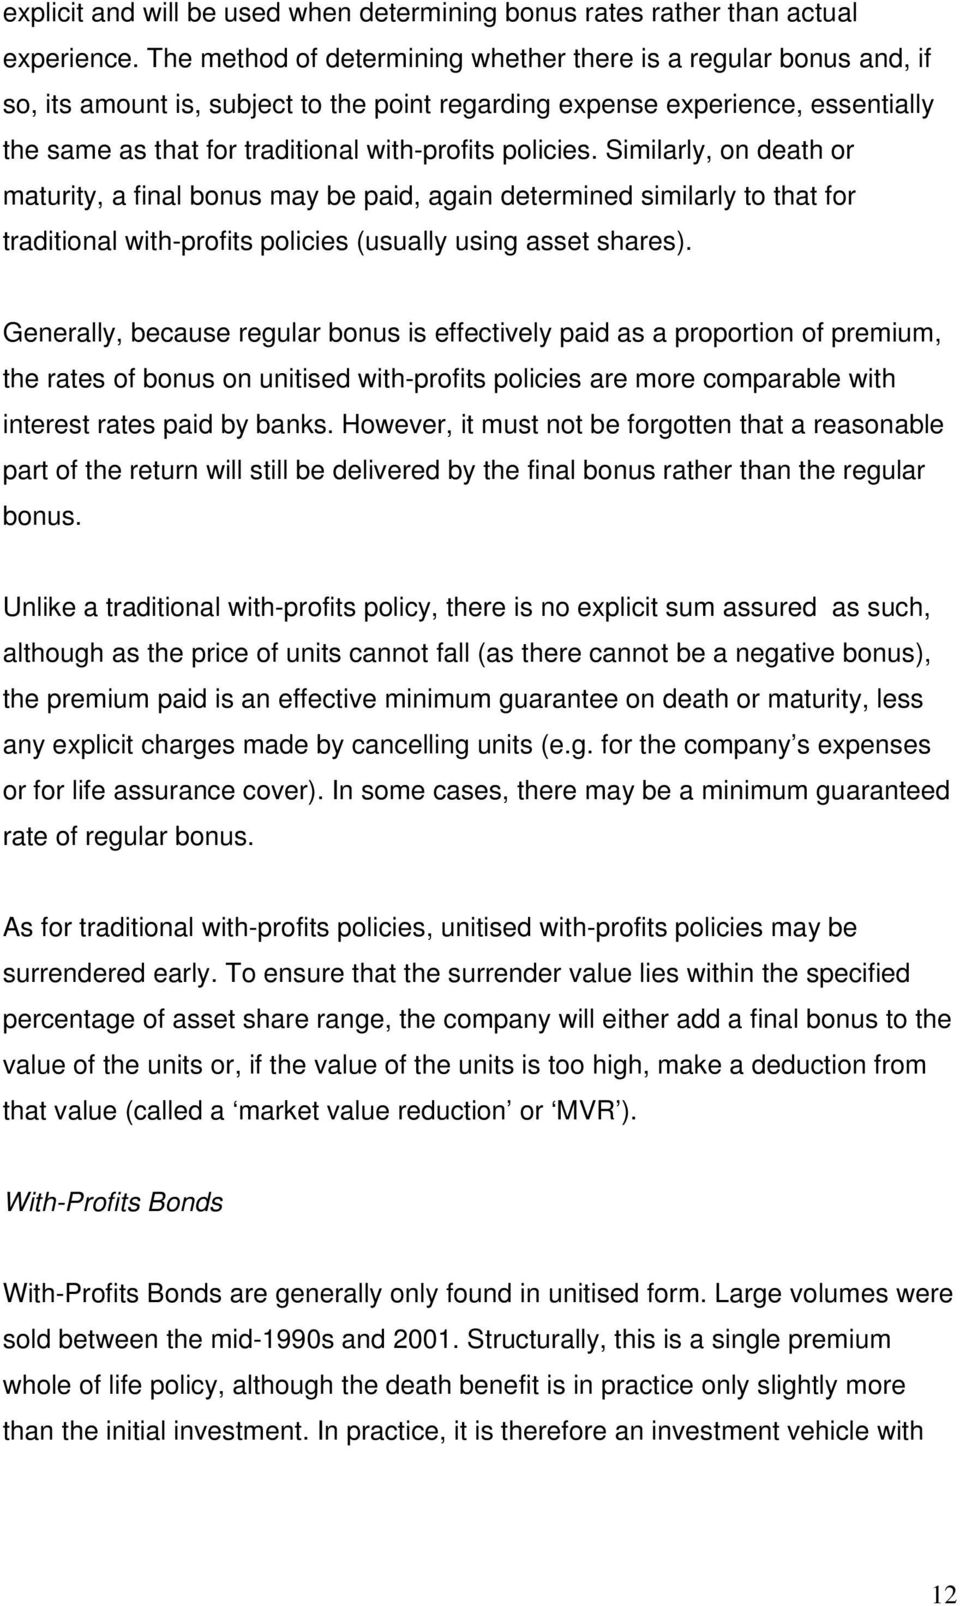 policies. Similarly, on death or maturity, a final bonus may be paid, again determined similarly to that for traditional with-profits policies (usually using asset shares).